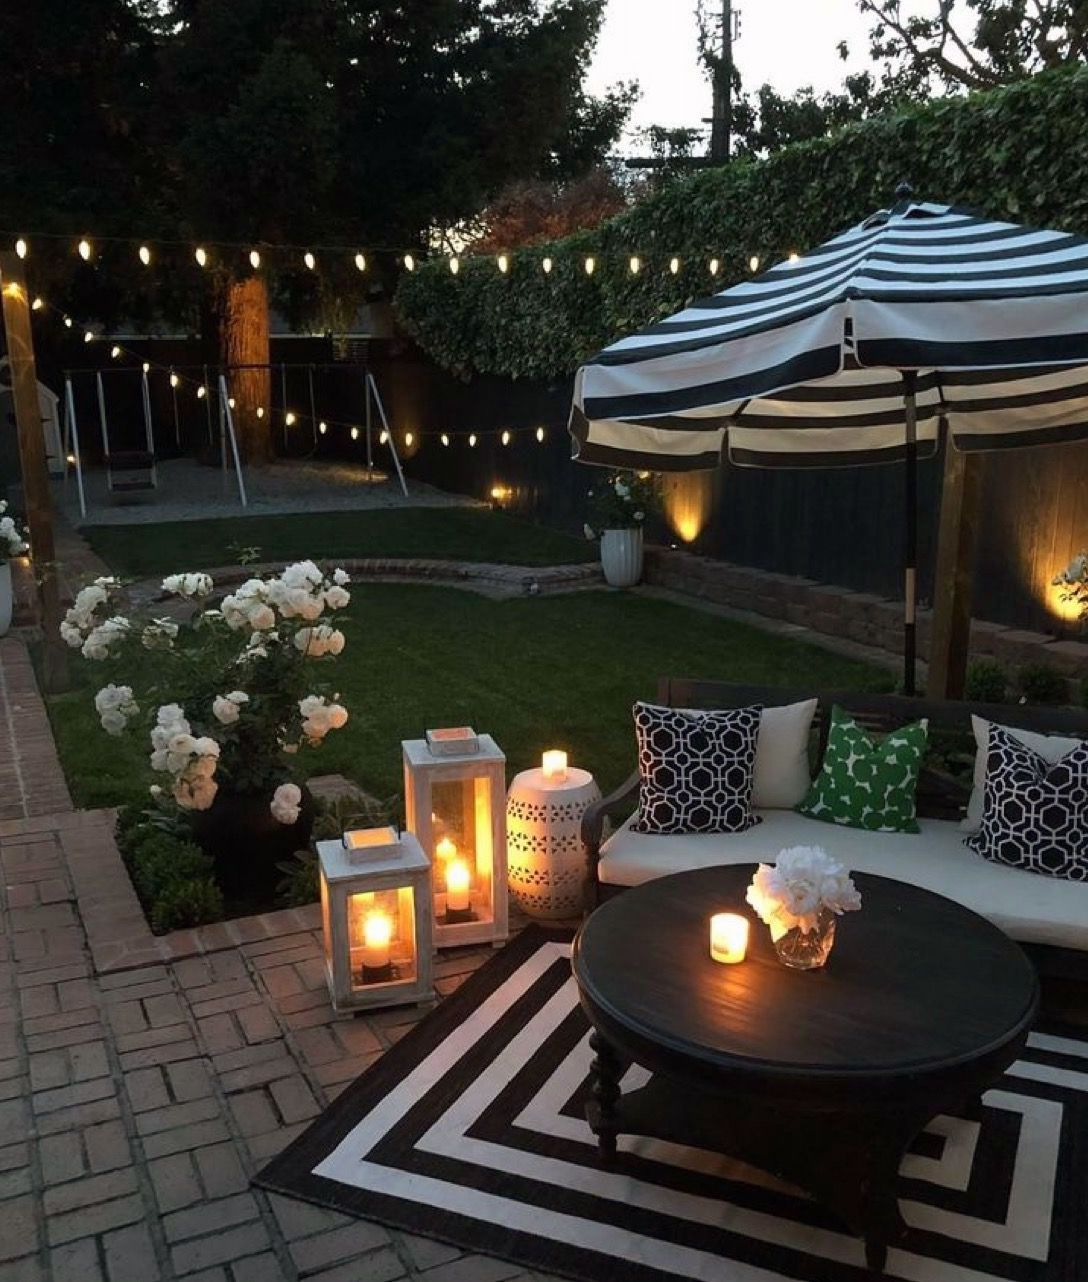 21 attractive backyard oasis on a budget gardens ideas in